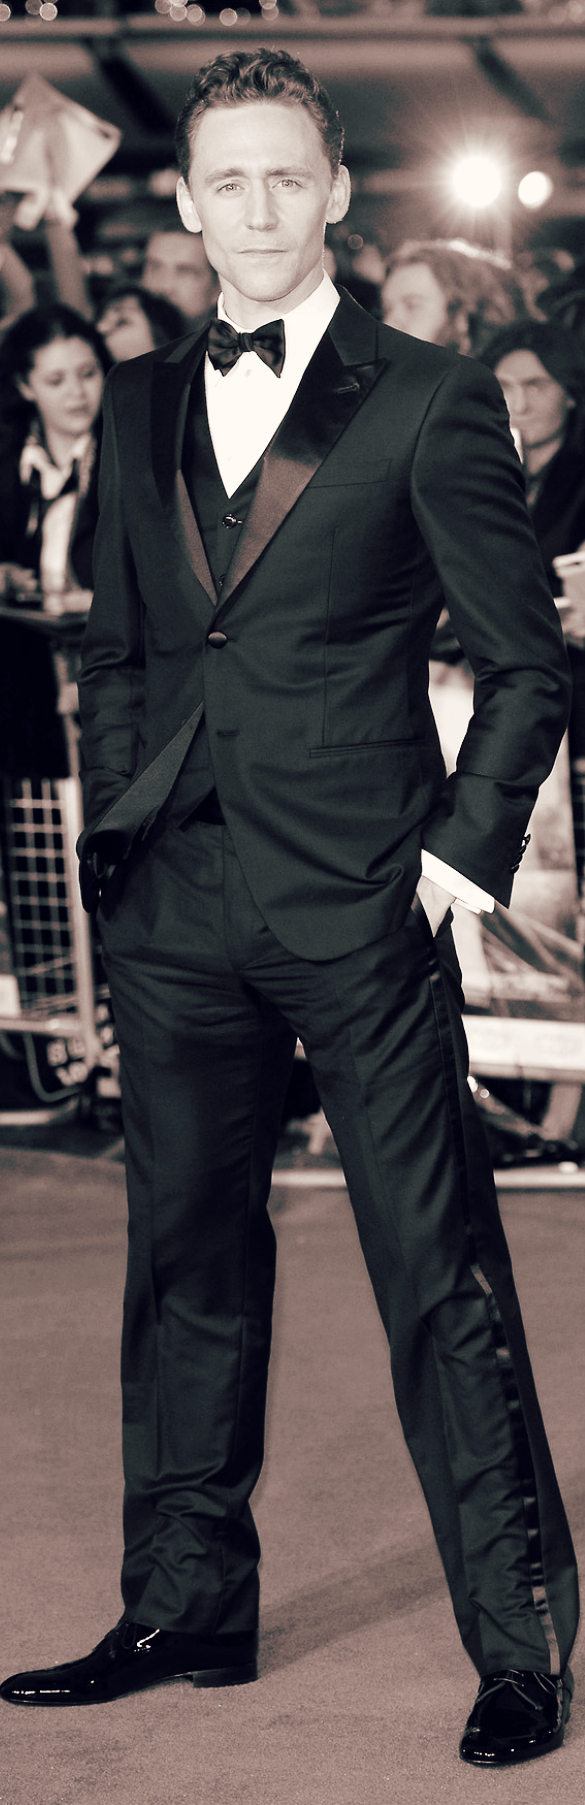 One Tom Hiddleston, one gorgeous suit.